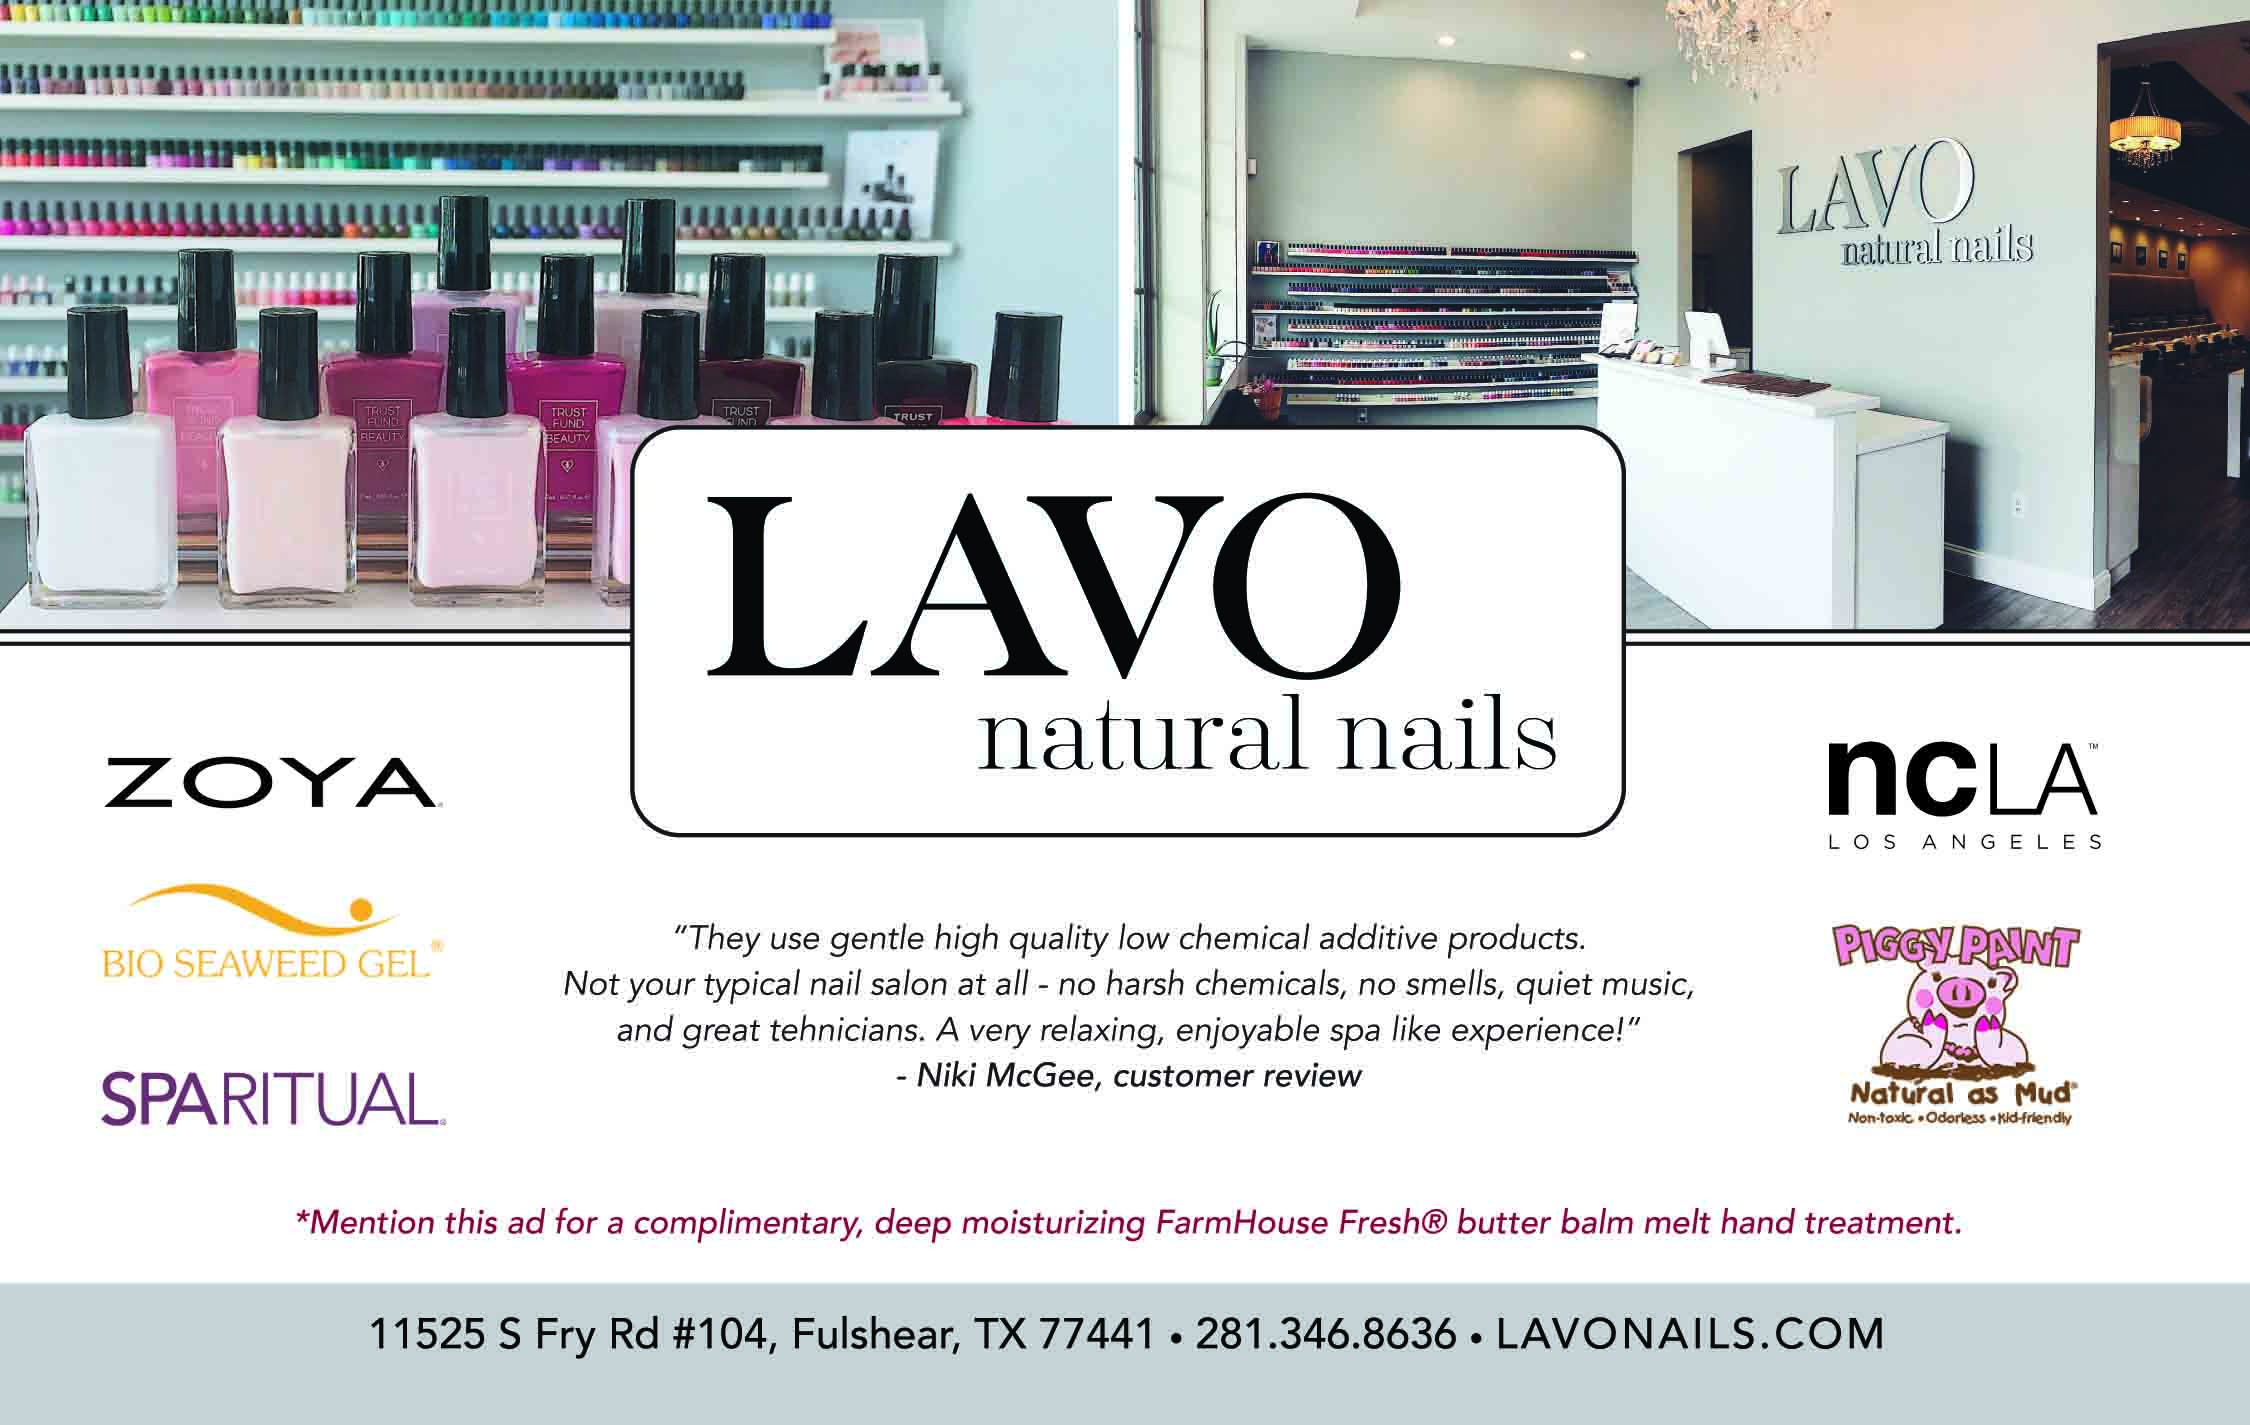 LAVO Natural Nails Ad